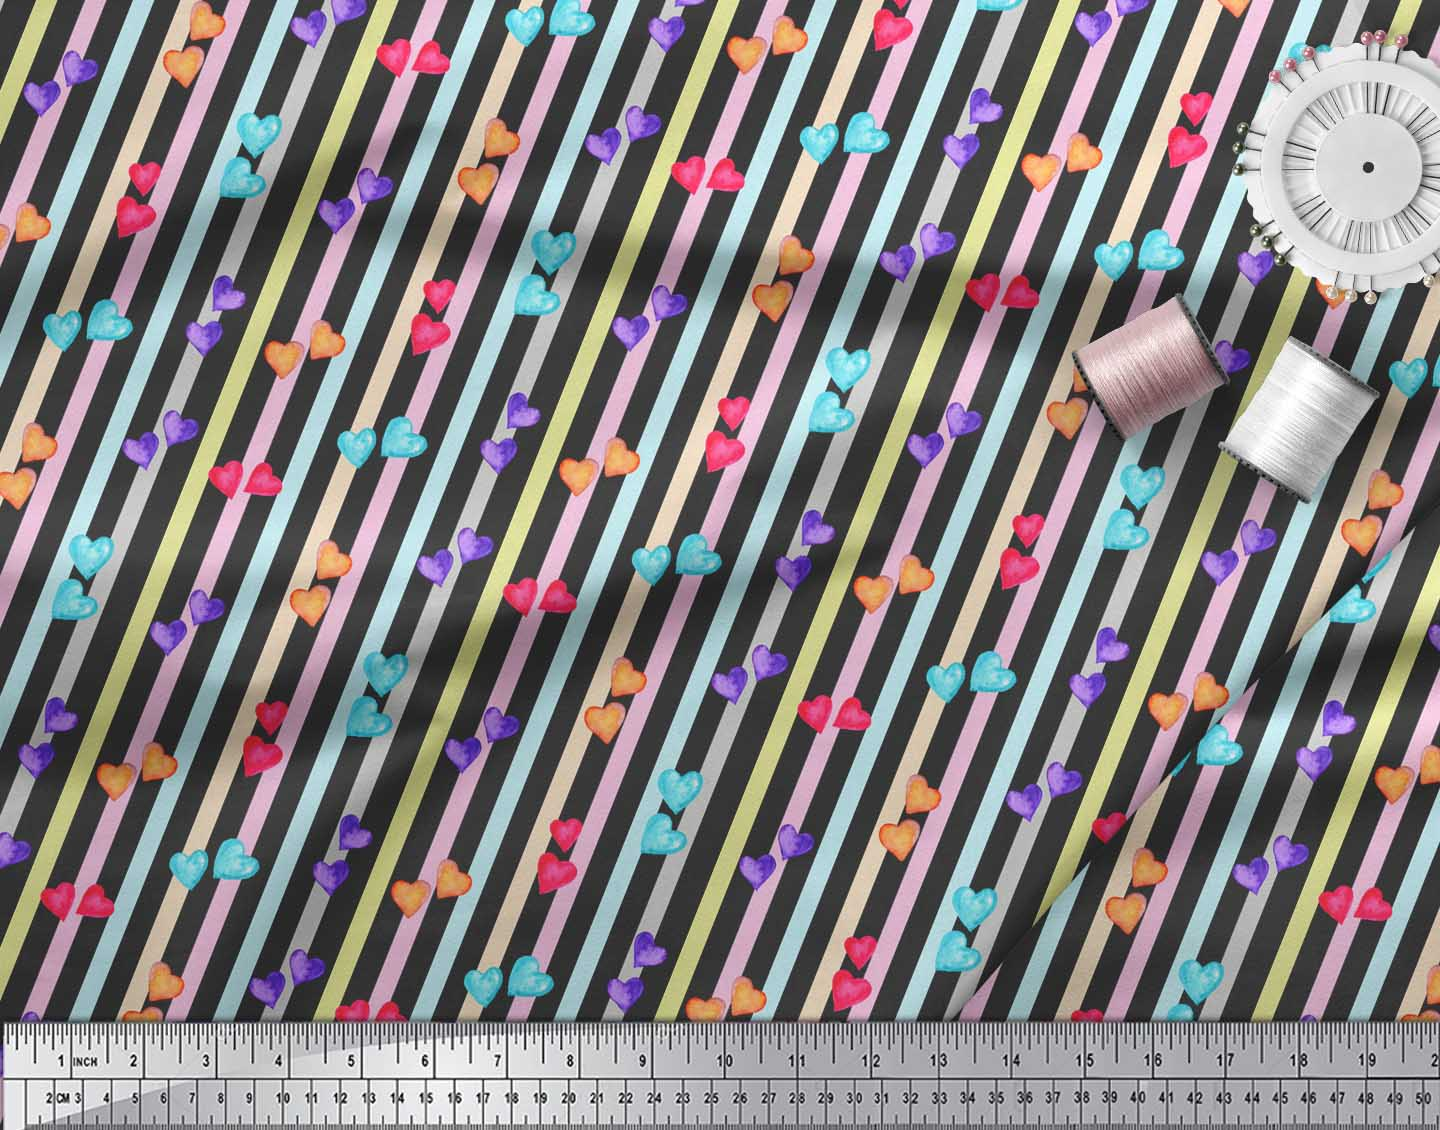 Soimoi-Black-Cotton-Poplin-Fabric-Heart-Stripe-Decor-Fabric-Printed-KvO thumbnail 4